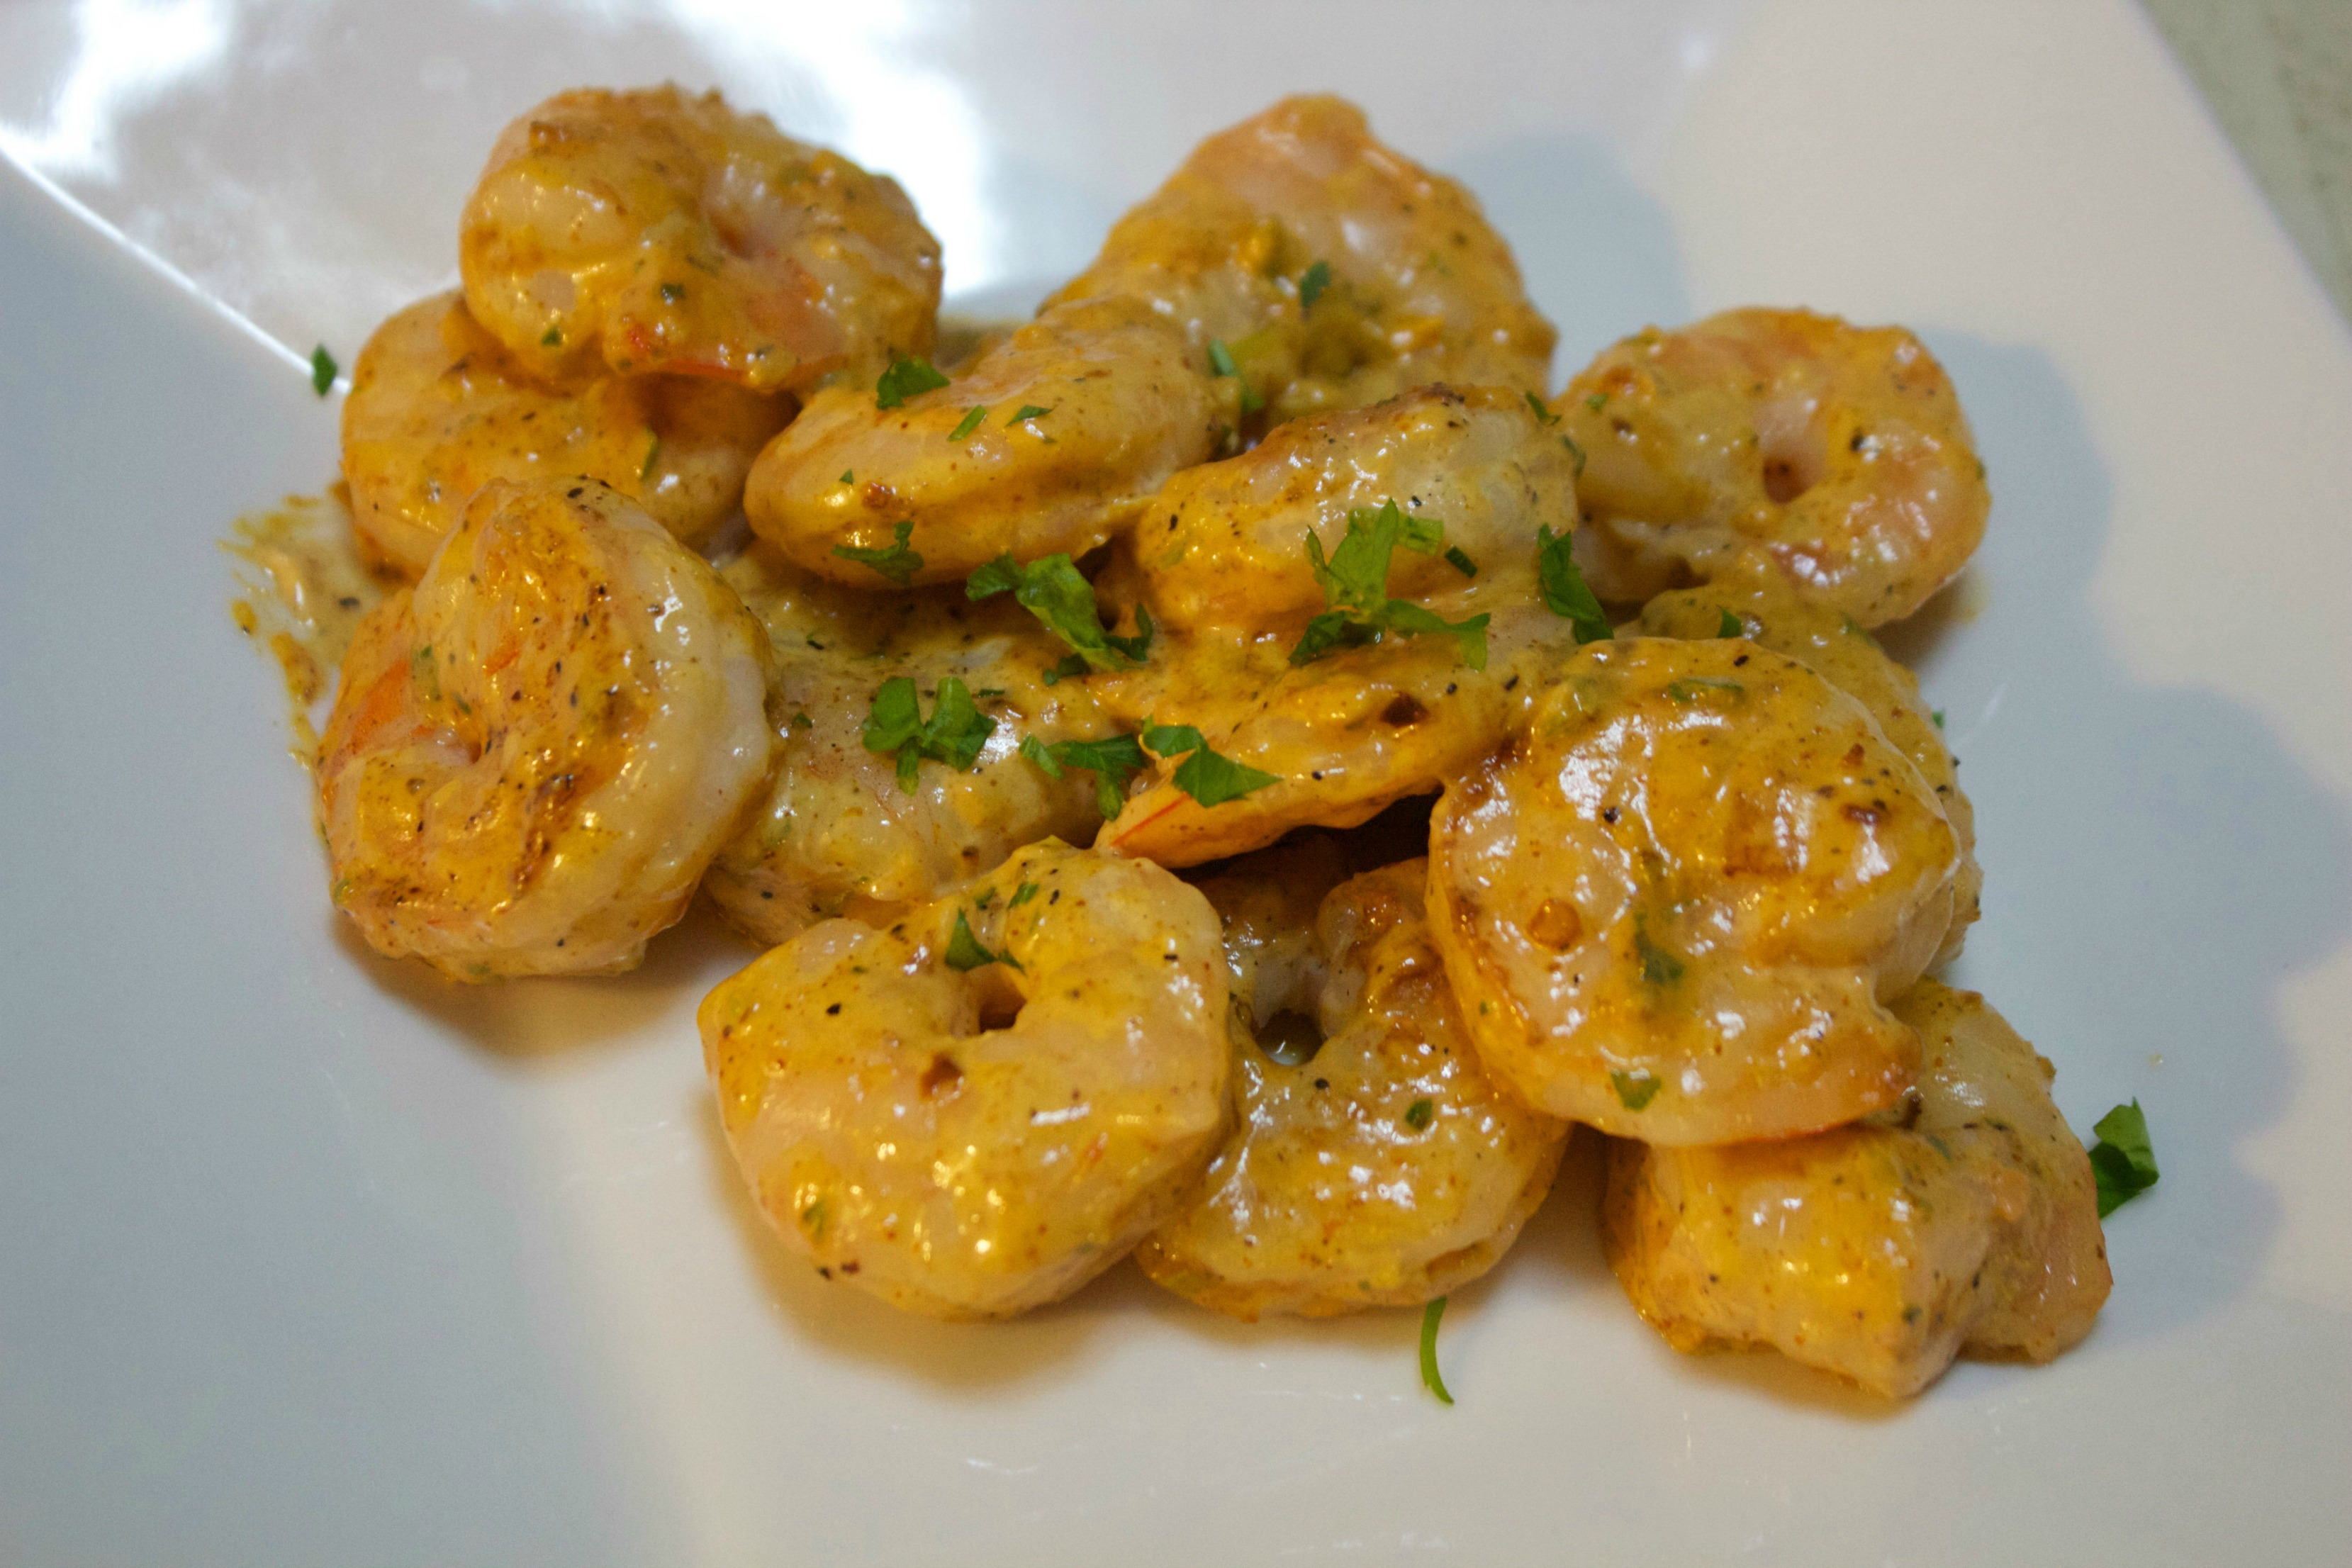 Shrimp coated in a remoulade sauce.